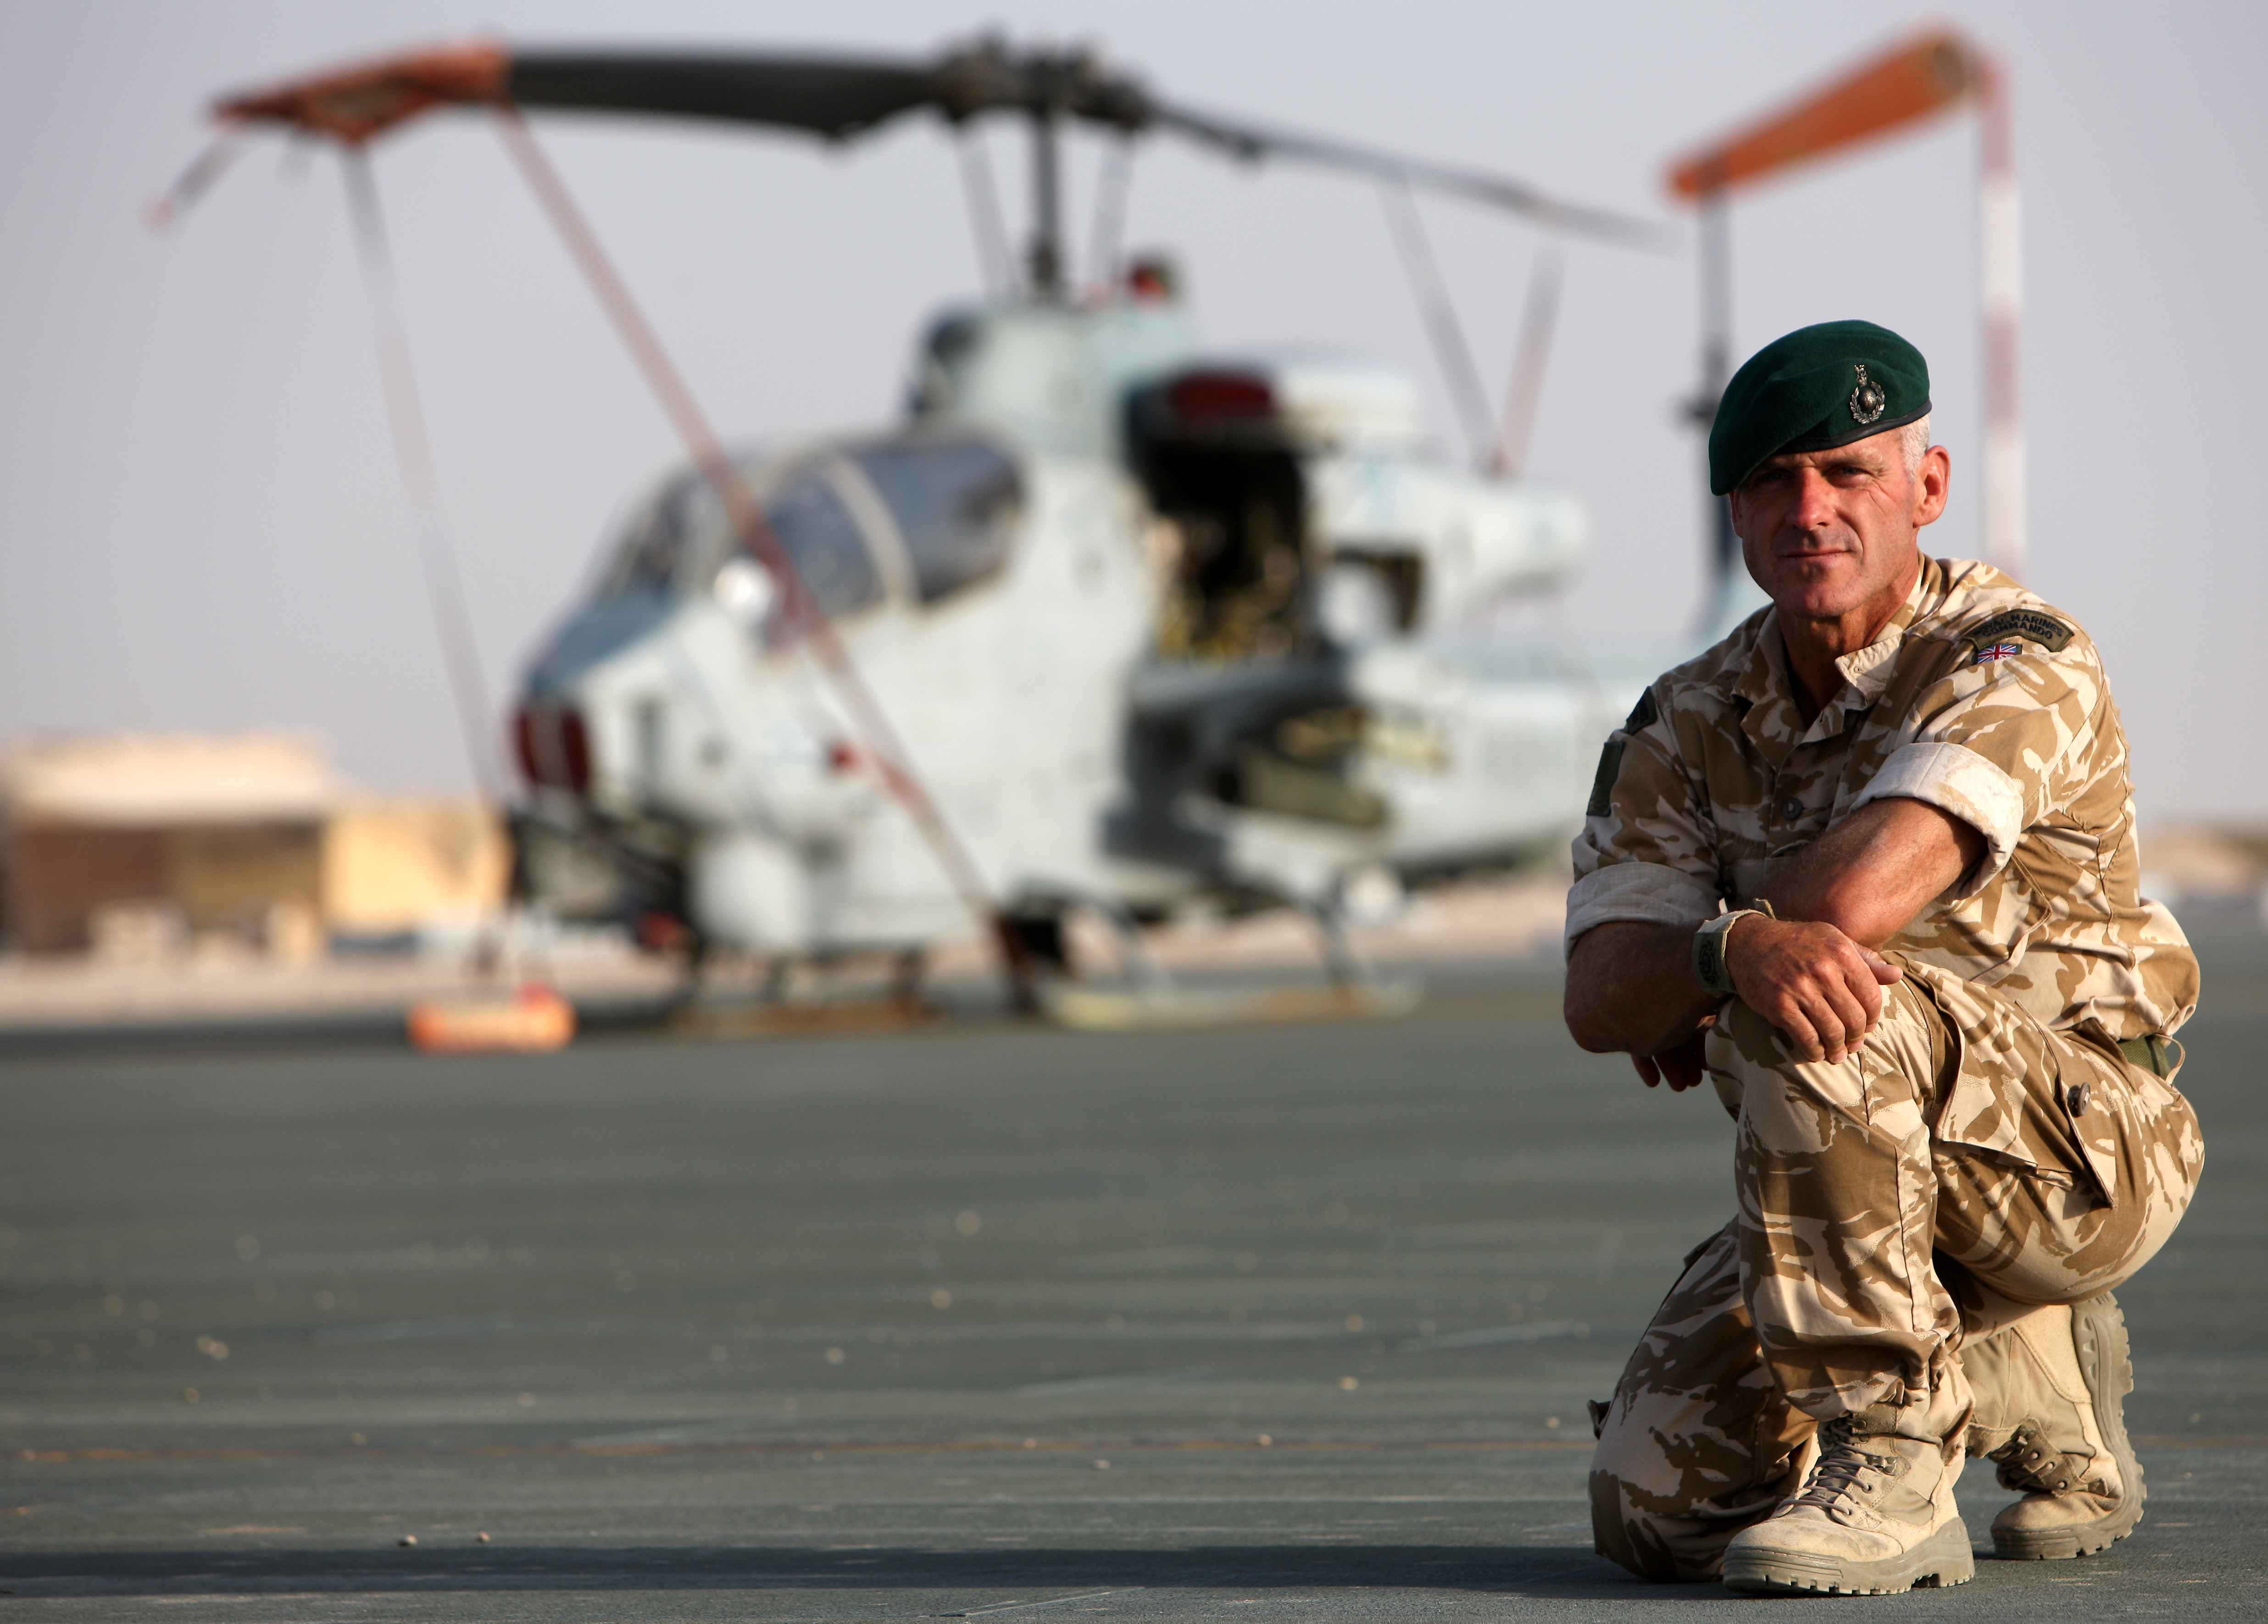 Matt in Afghanistan with helicopter